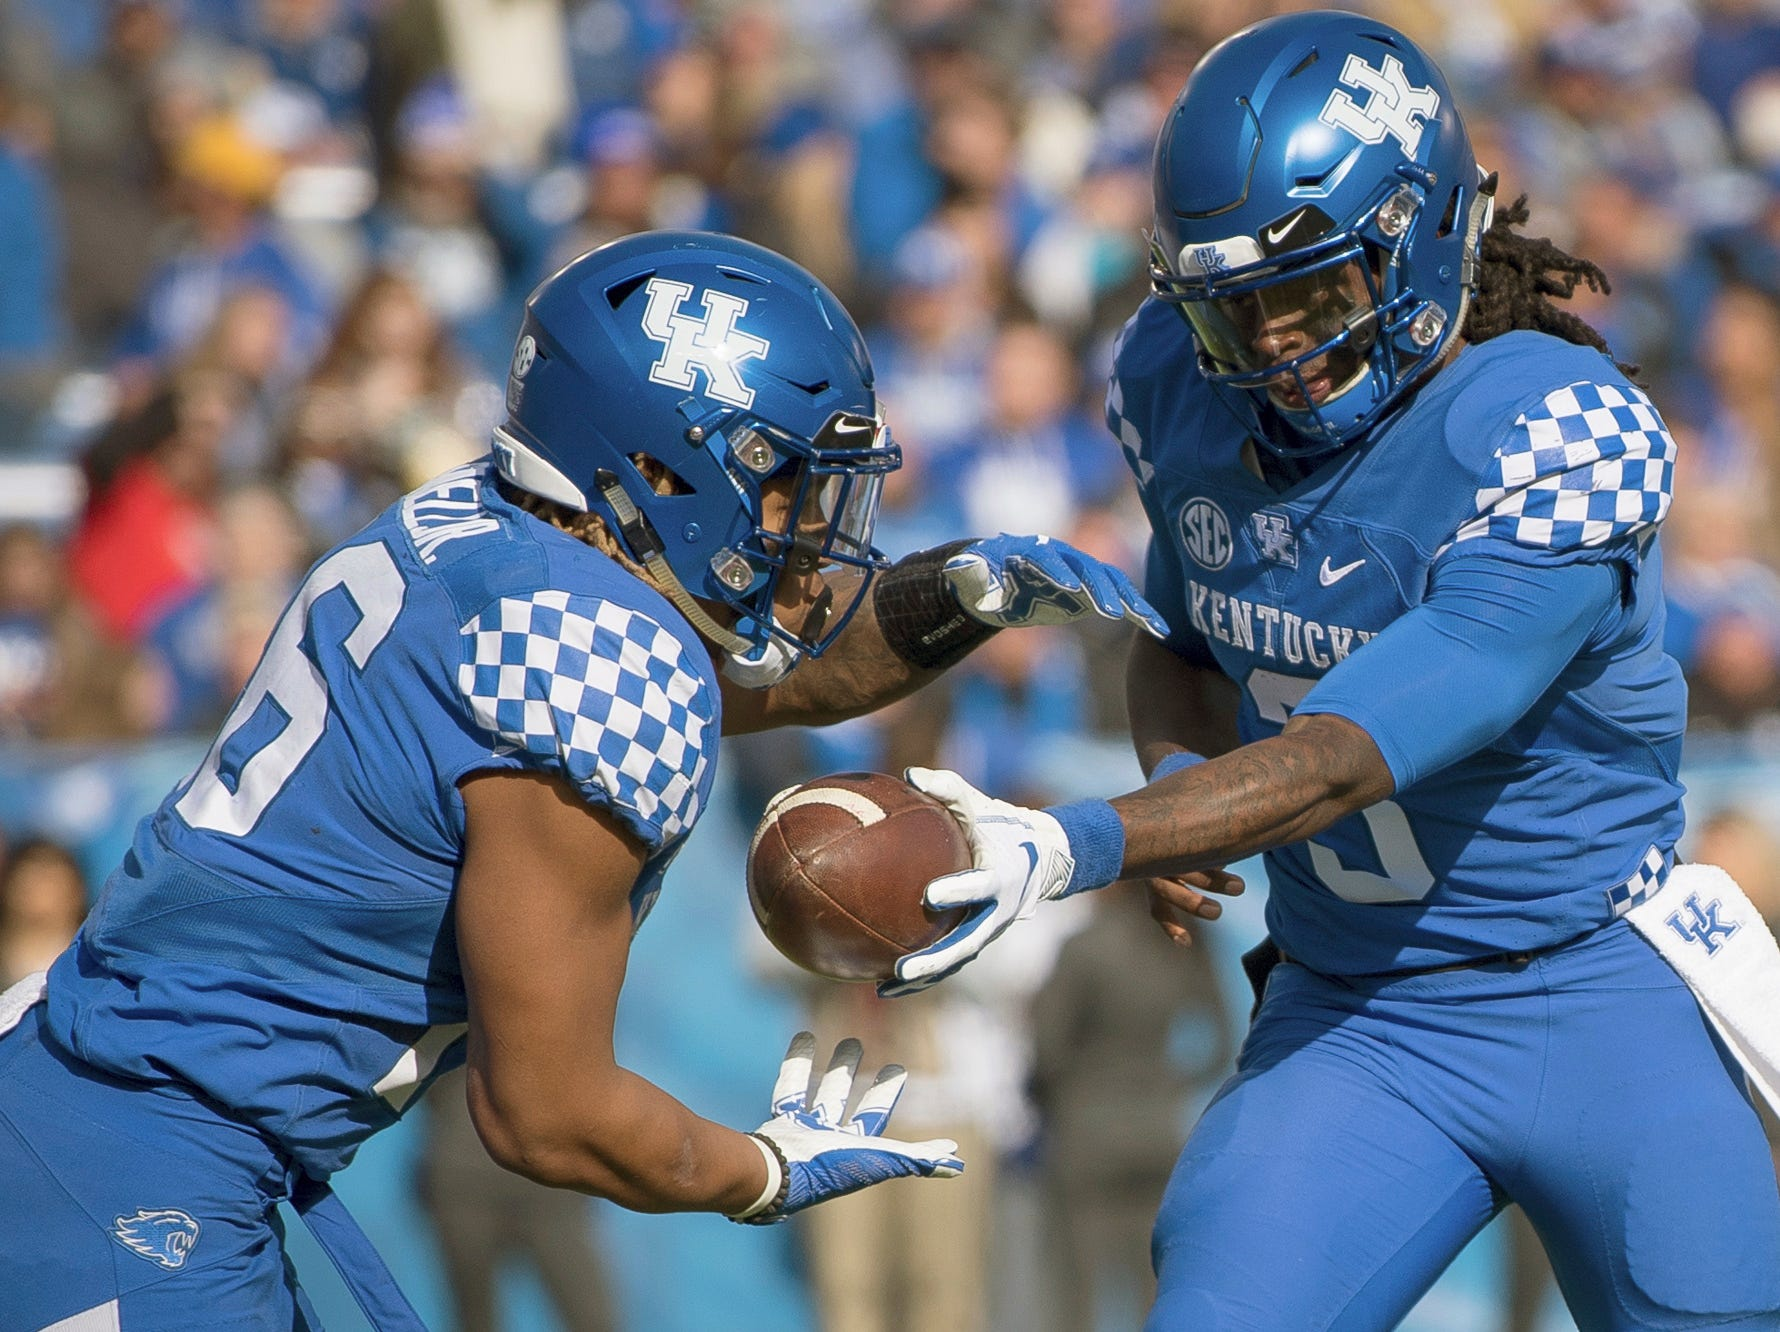 20. Kentucky (8-3) | Last game: Defeated Middle Tennessee, 34-23 | Previous ranking: 25